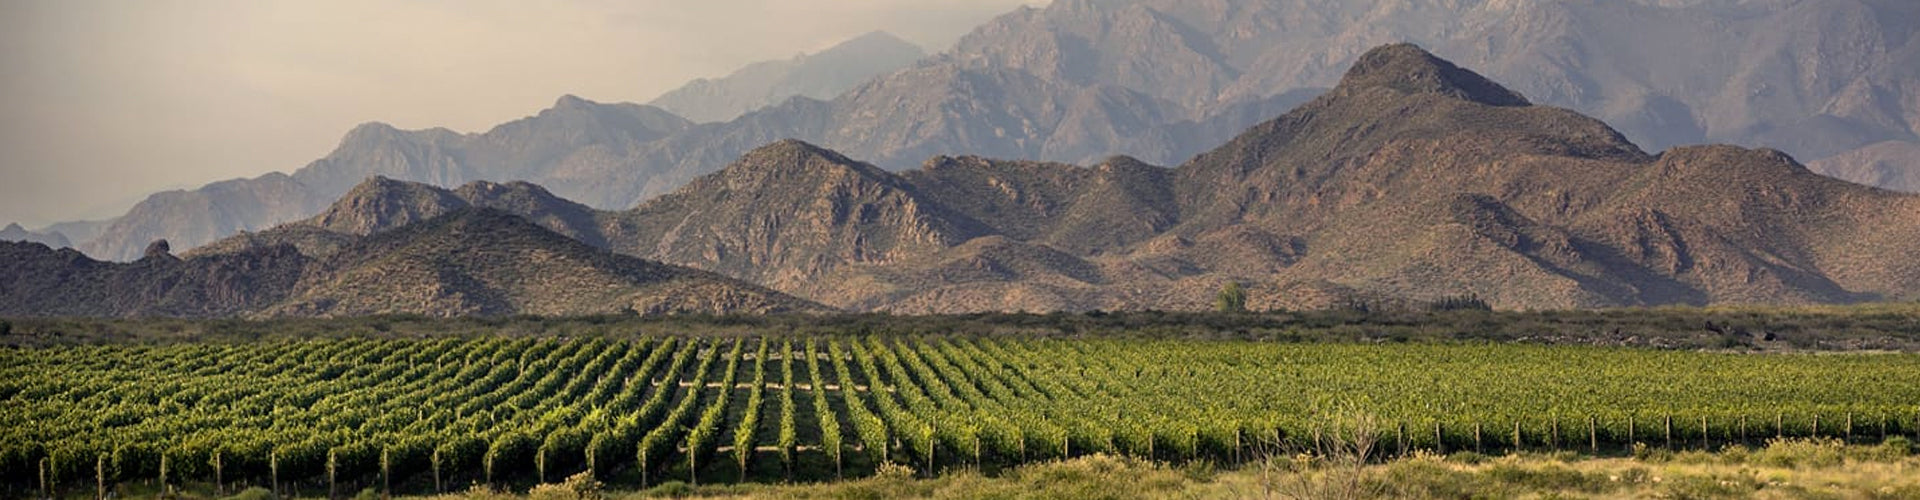 Bodega Los Toneles Vineyards in Mendoza